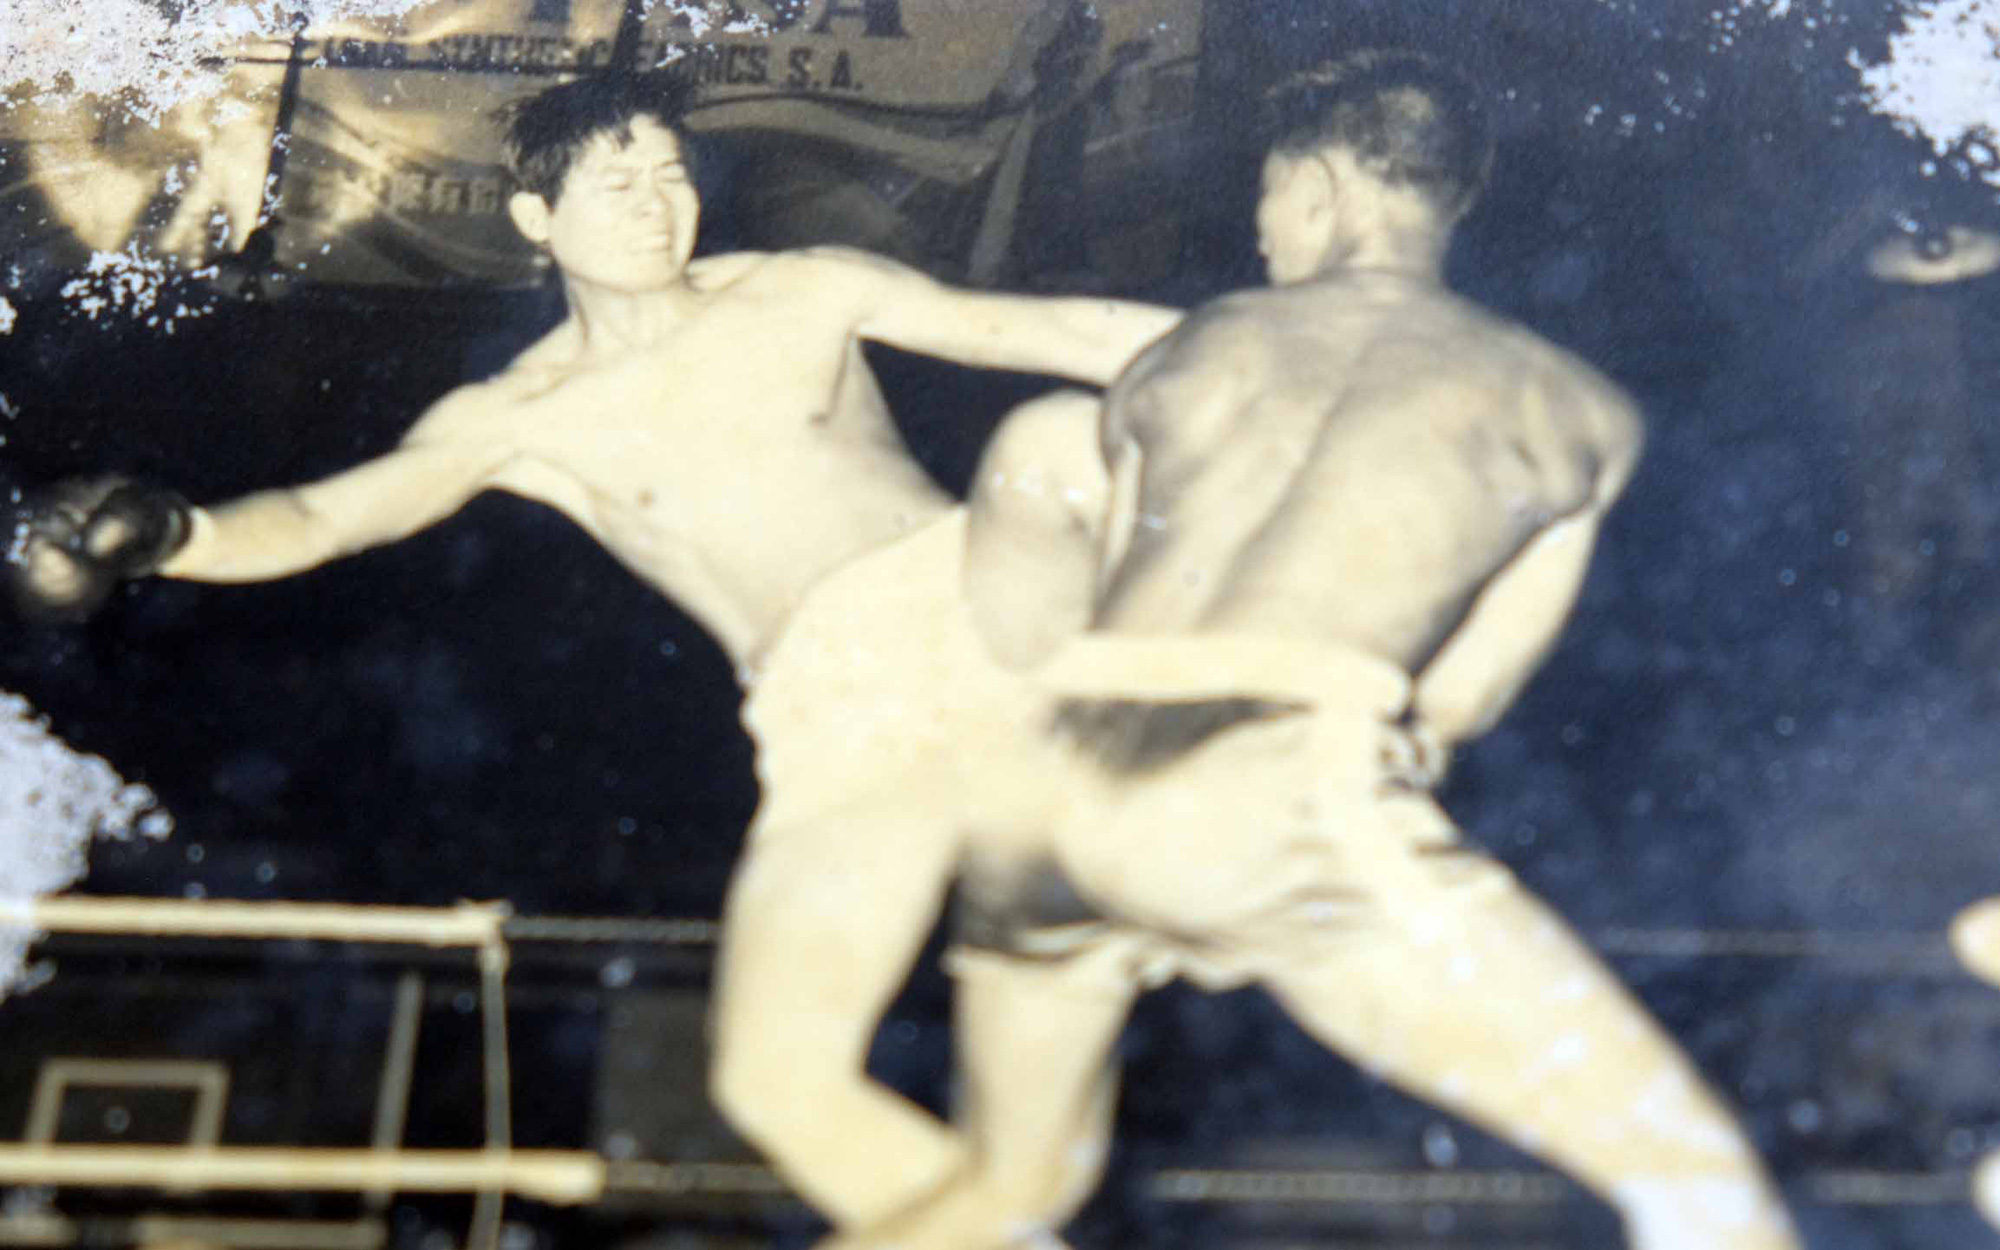 Fighting rings once popular public events in Vietnam's Mekong Delta